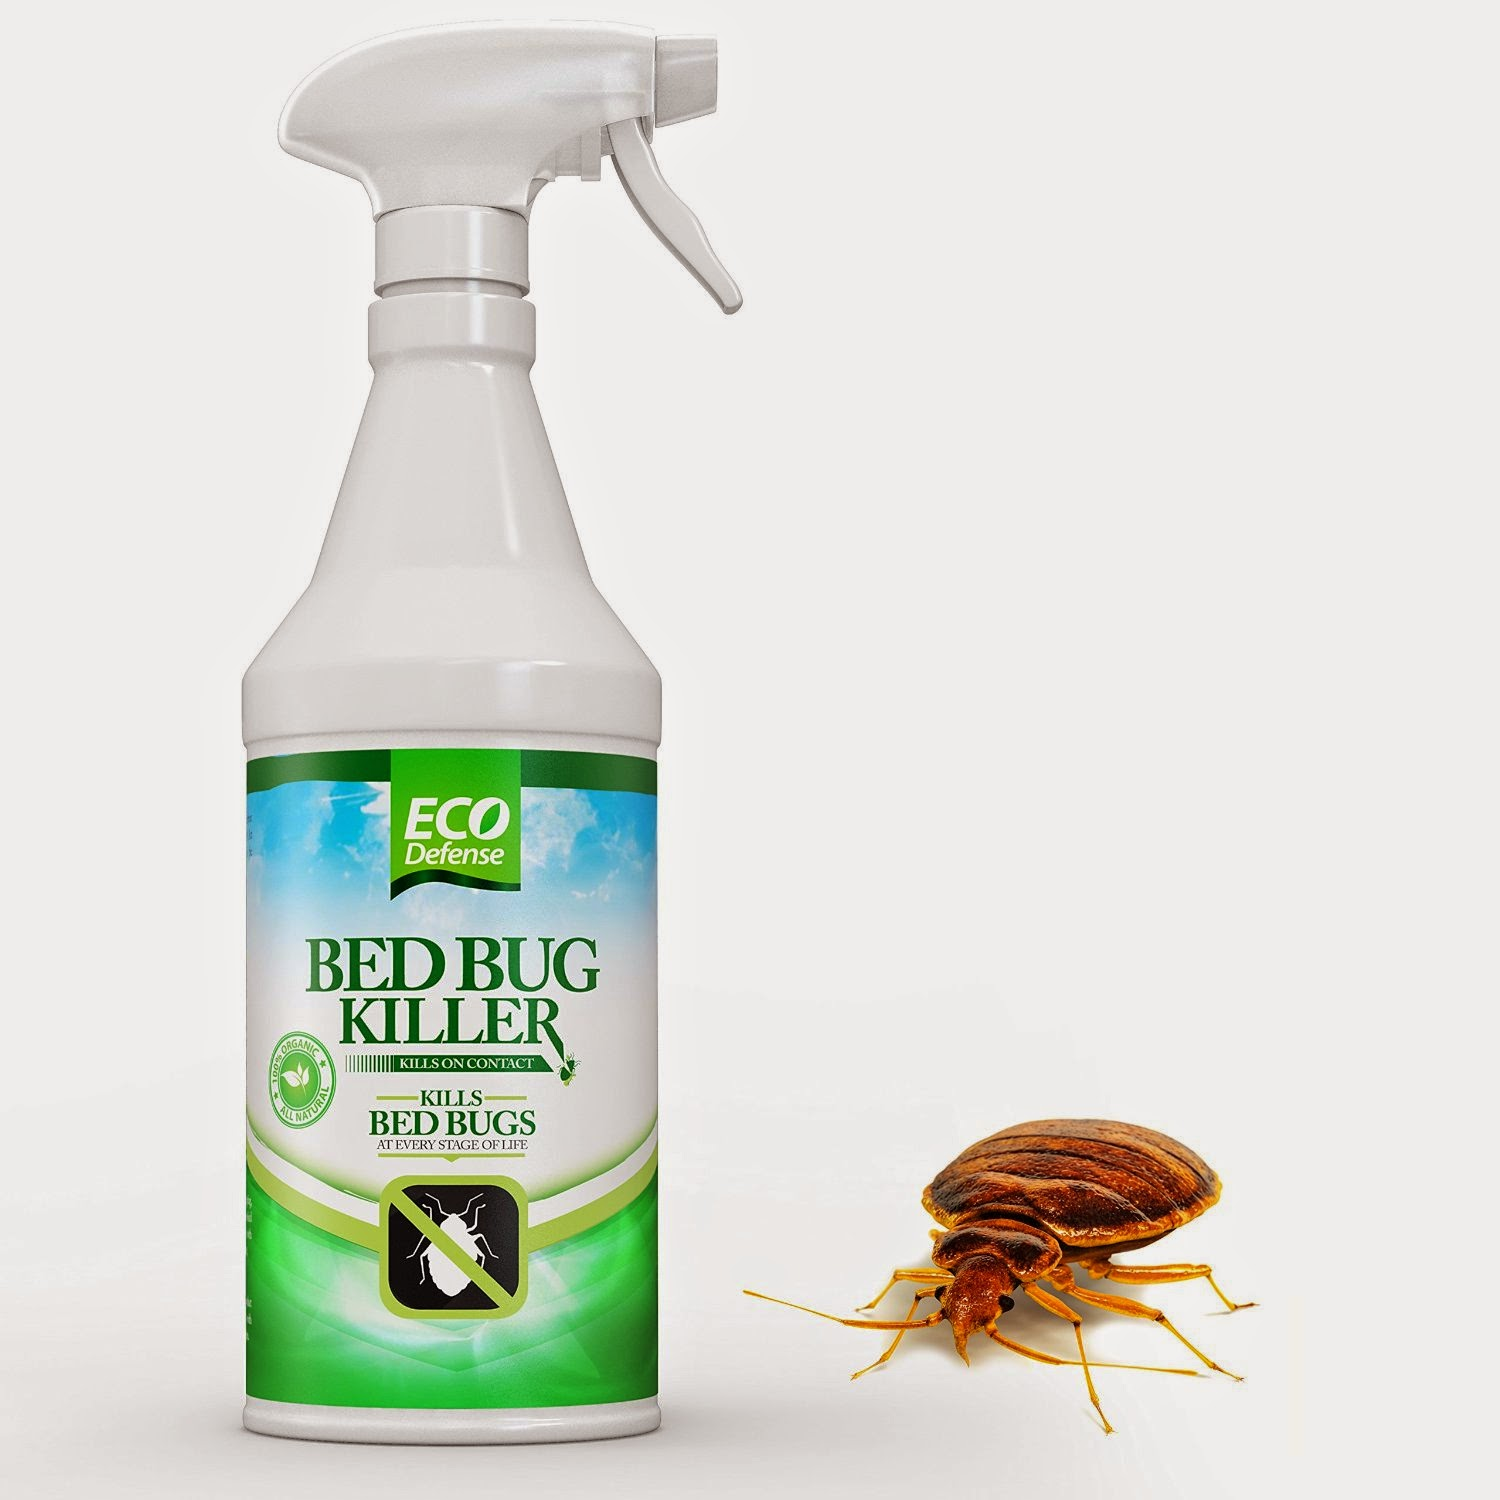 Eco Defense Bed Bug Killer Reviews